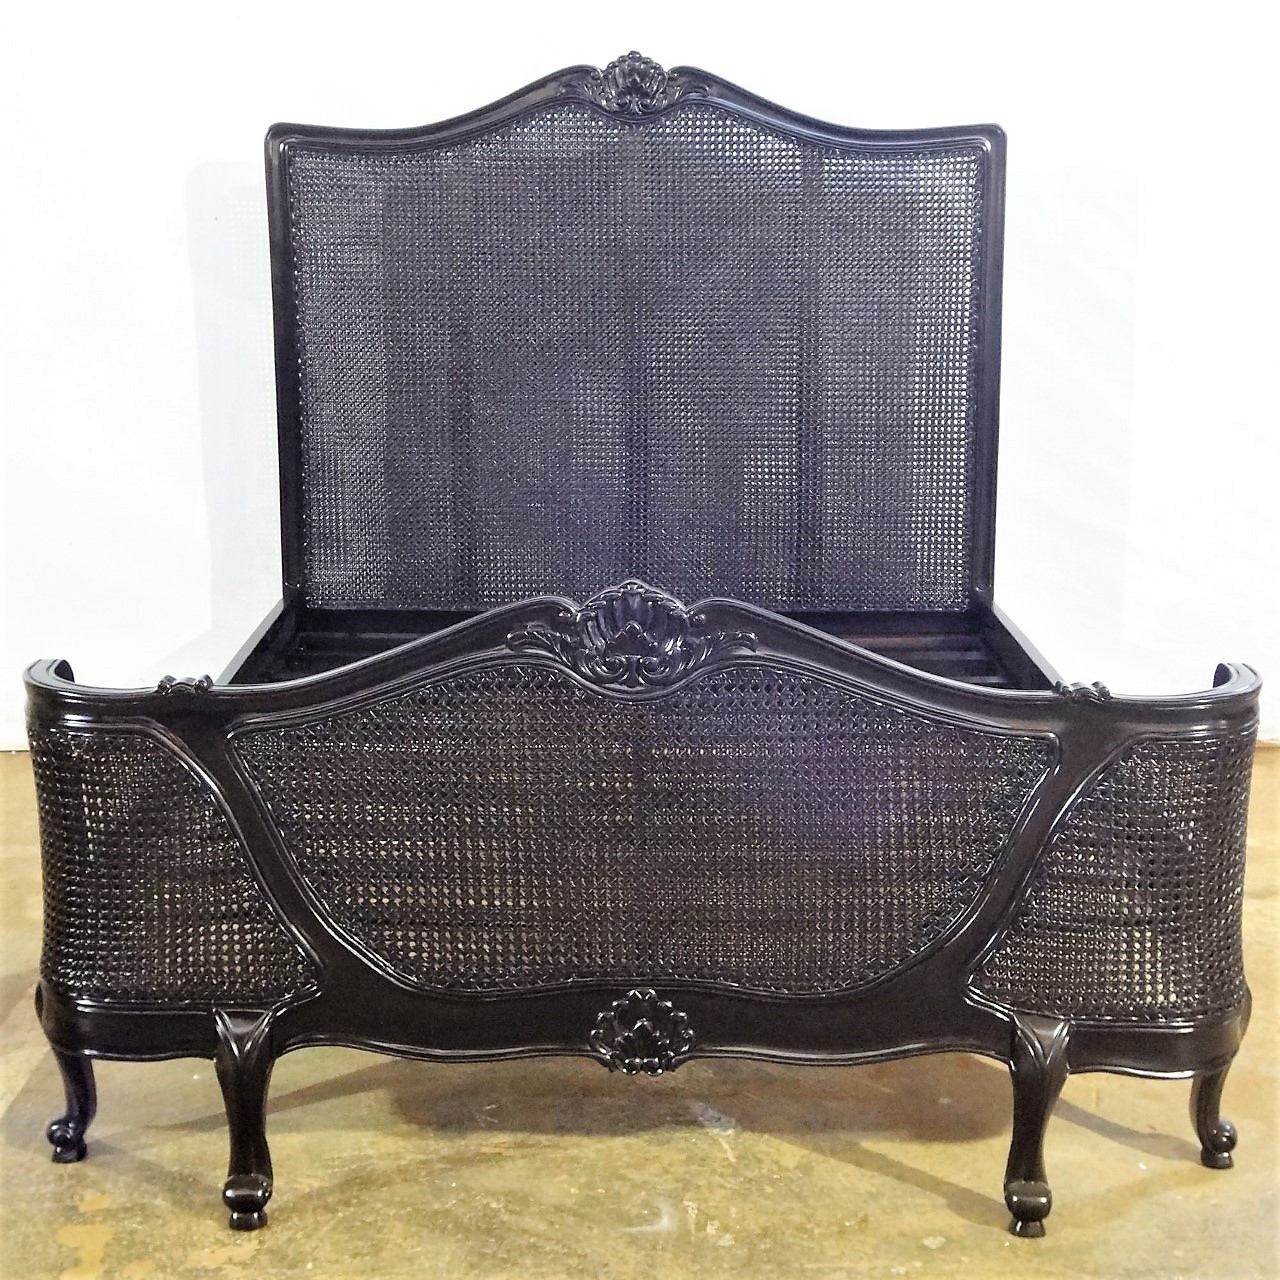 French Chateau Rattan Bed Black Gloss French Country Furniture Usa